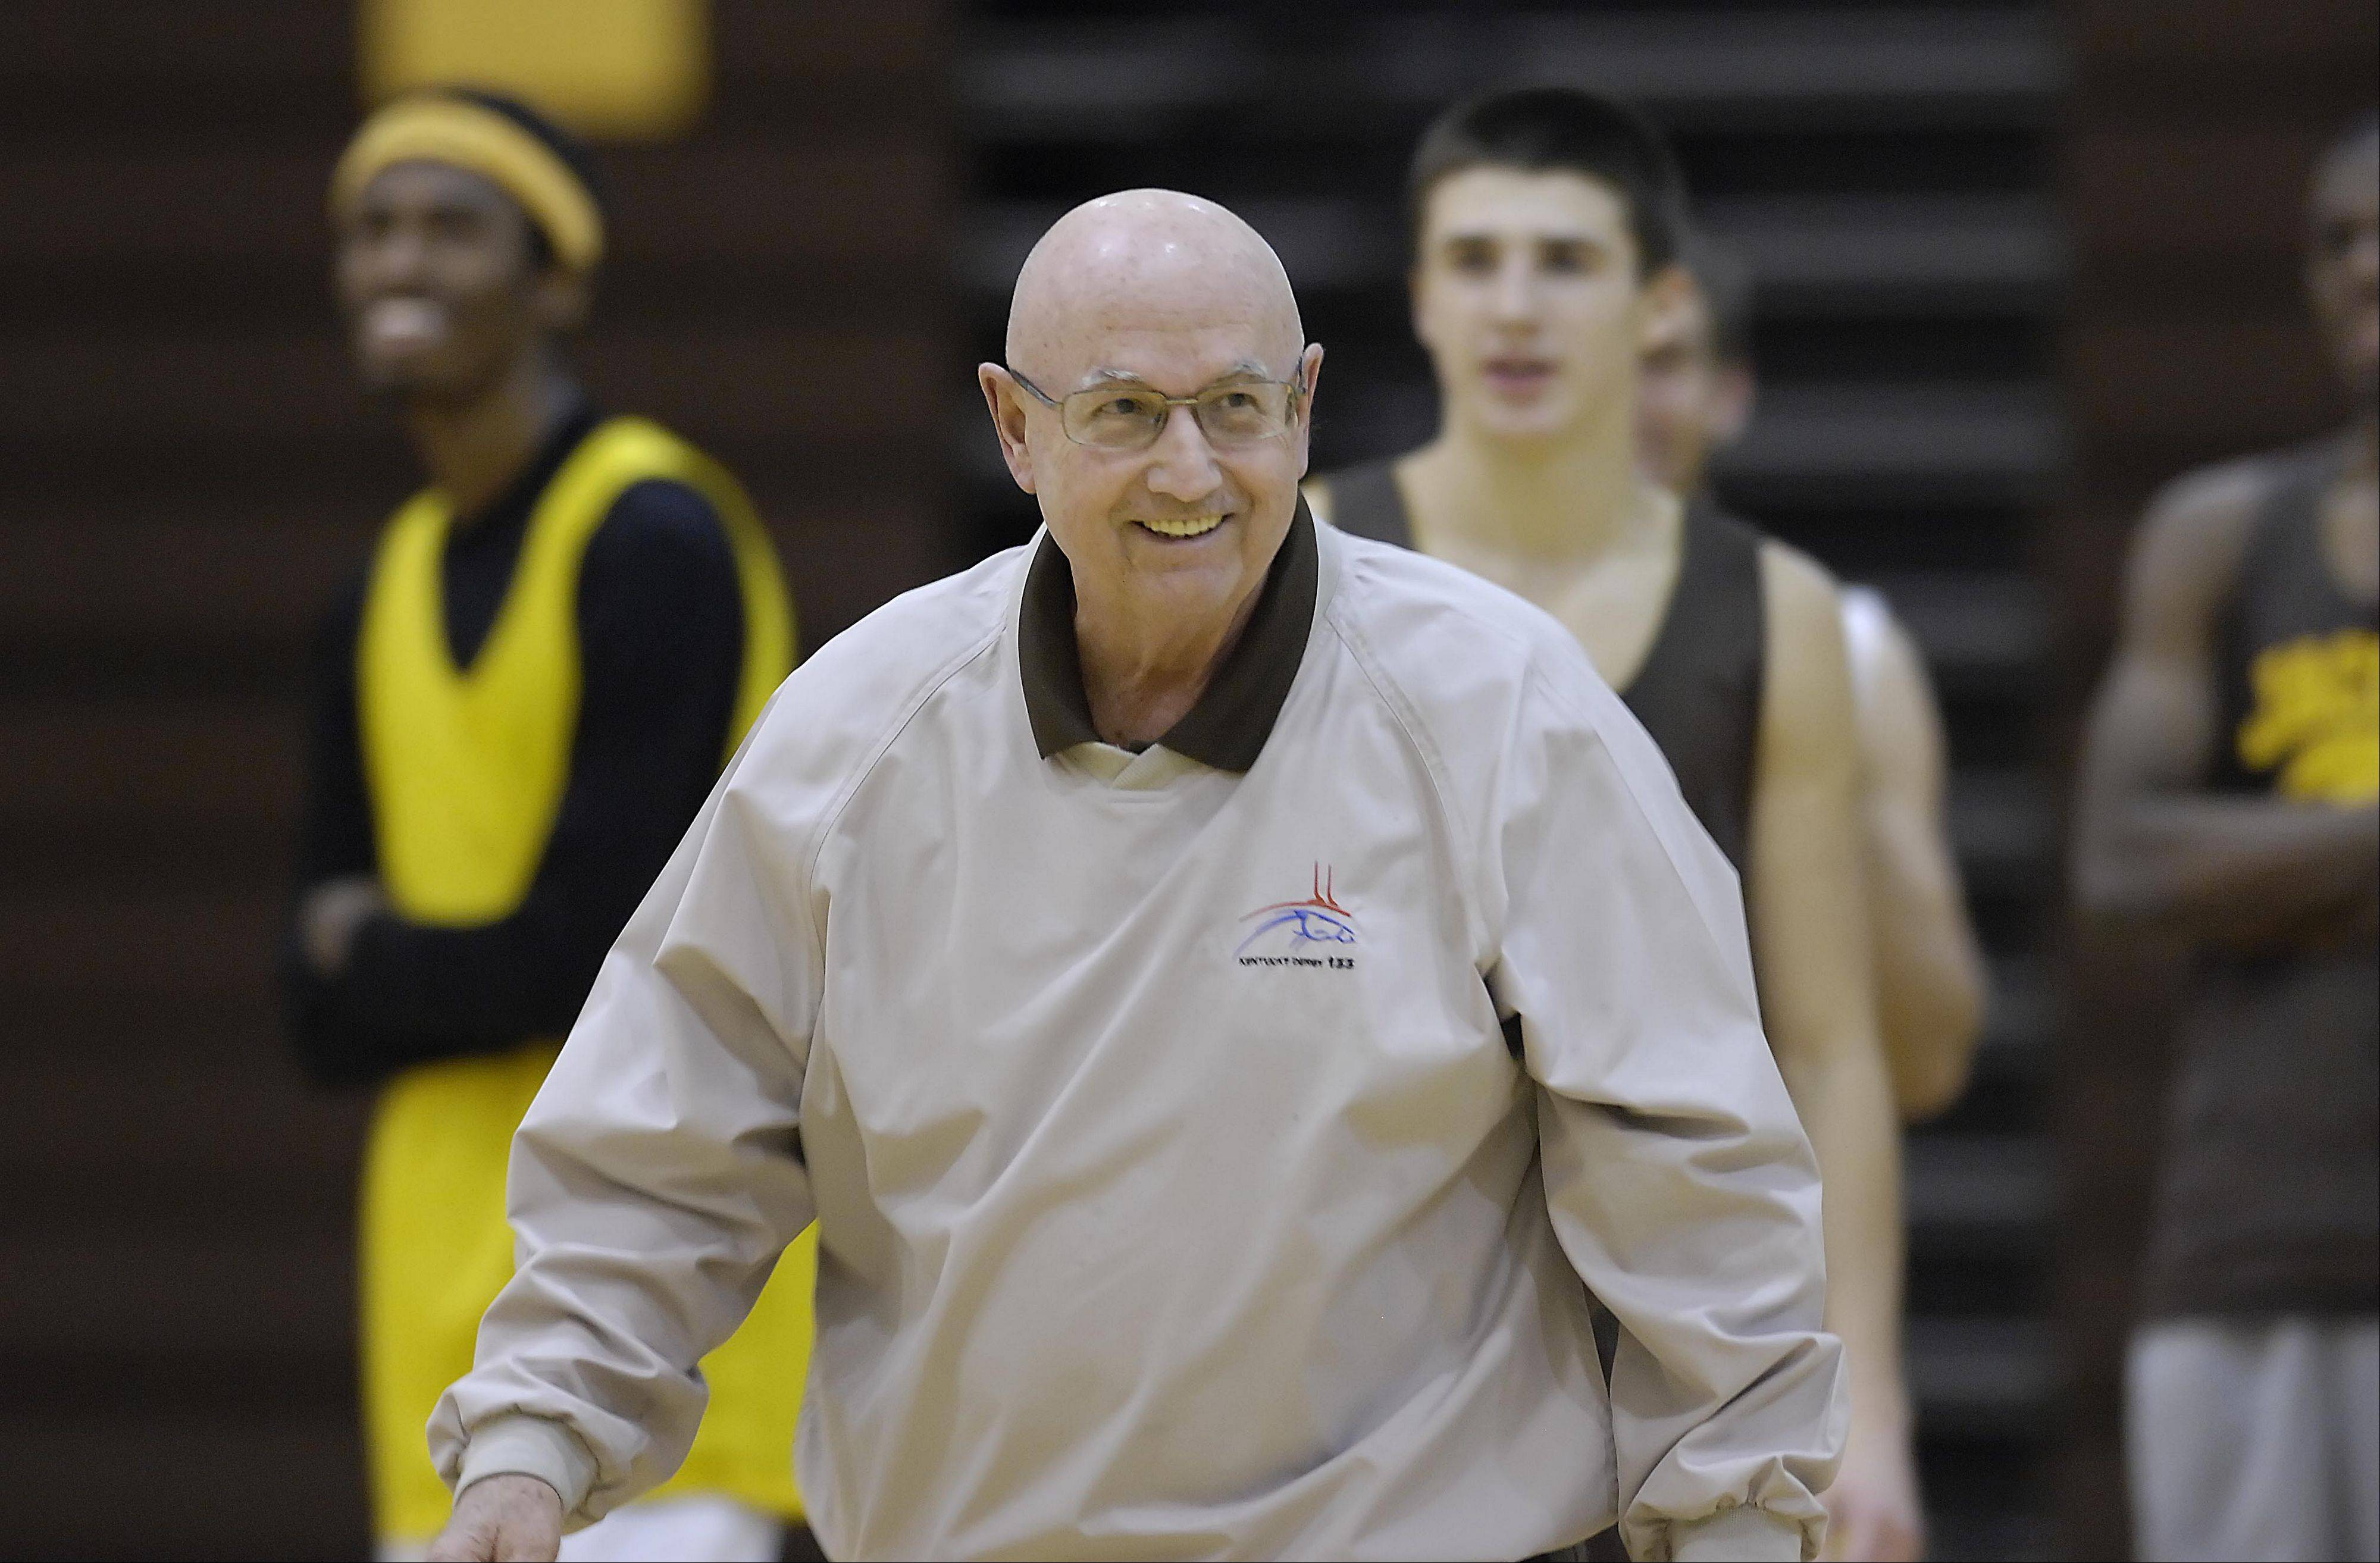 Jacobs boys basketball coach Jim Hinkle will retire at the end of the season after 50 years as a basketball coach.